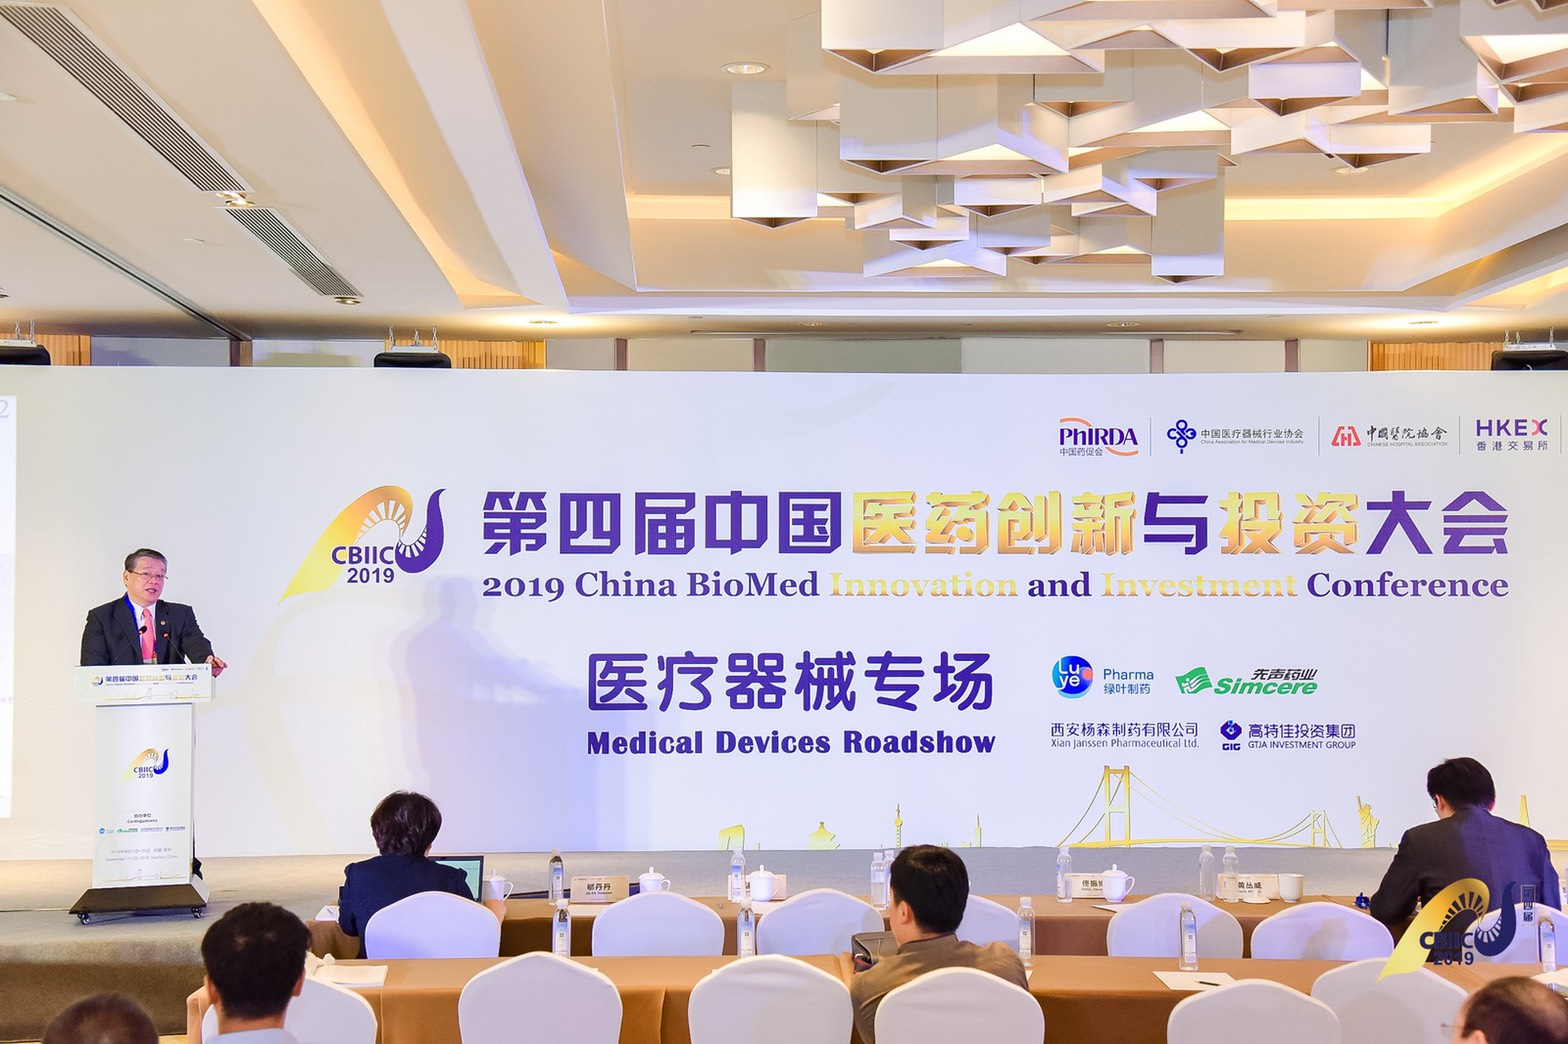 2019 China BioMed Innovation and Investment Conference